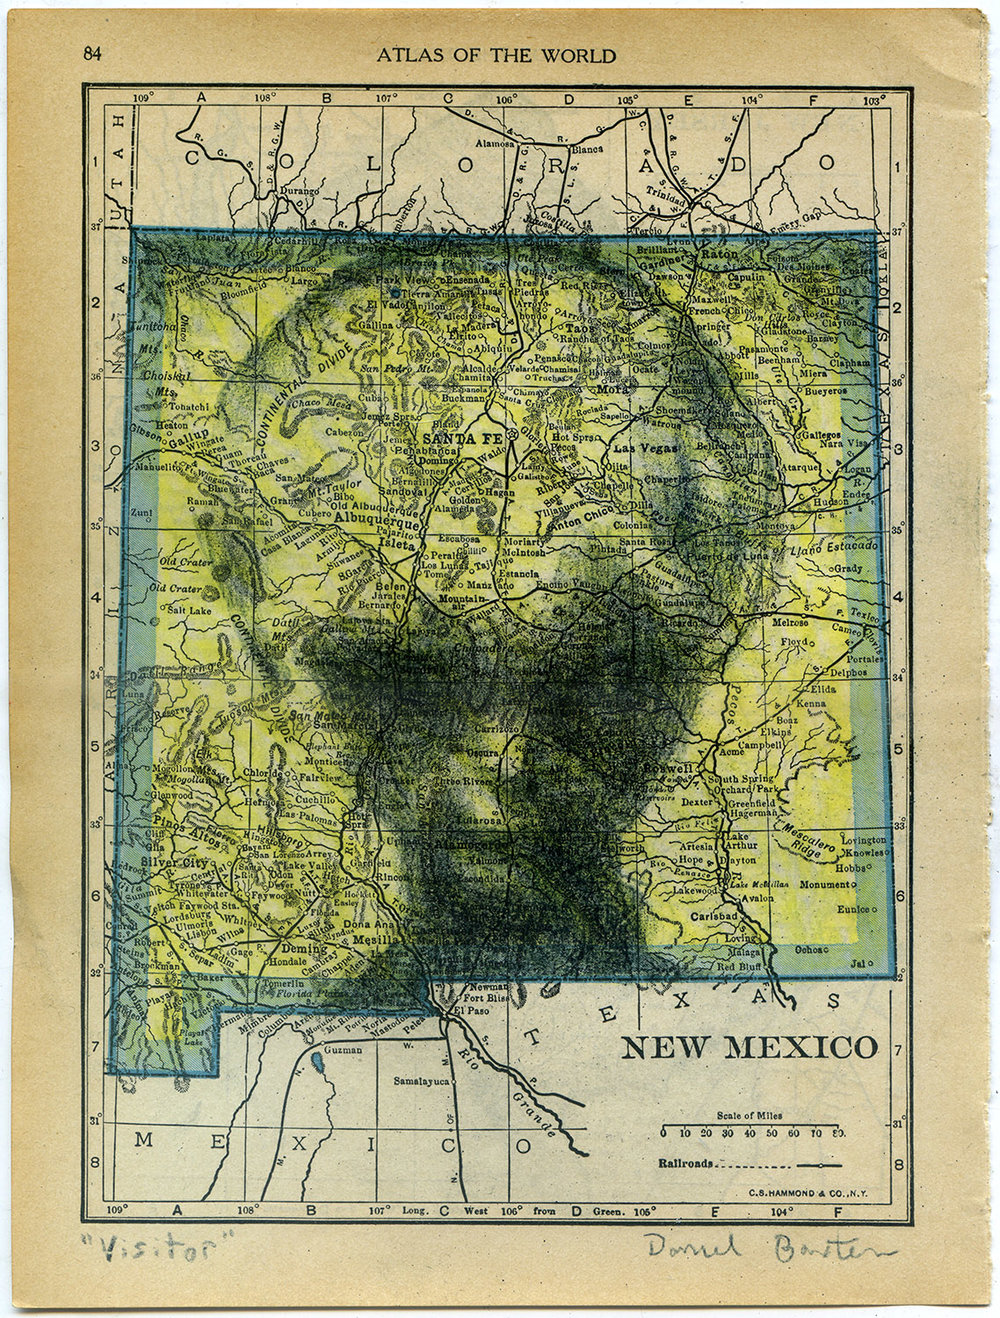 Daniel Baxter Visitor-New Mexico portrait.jpg